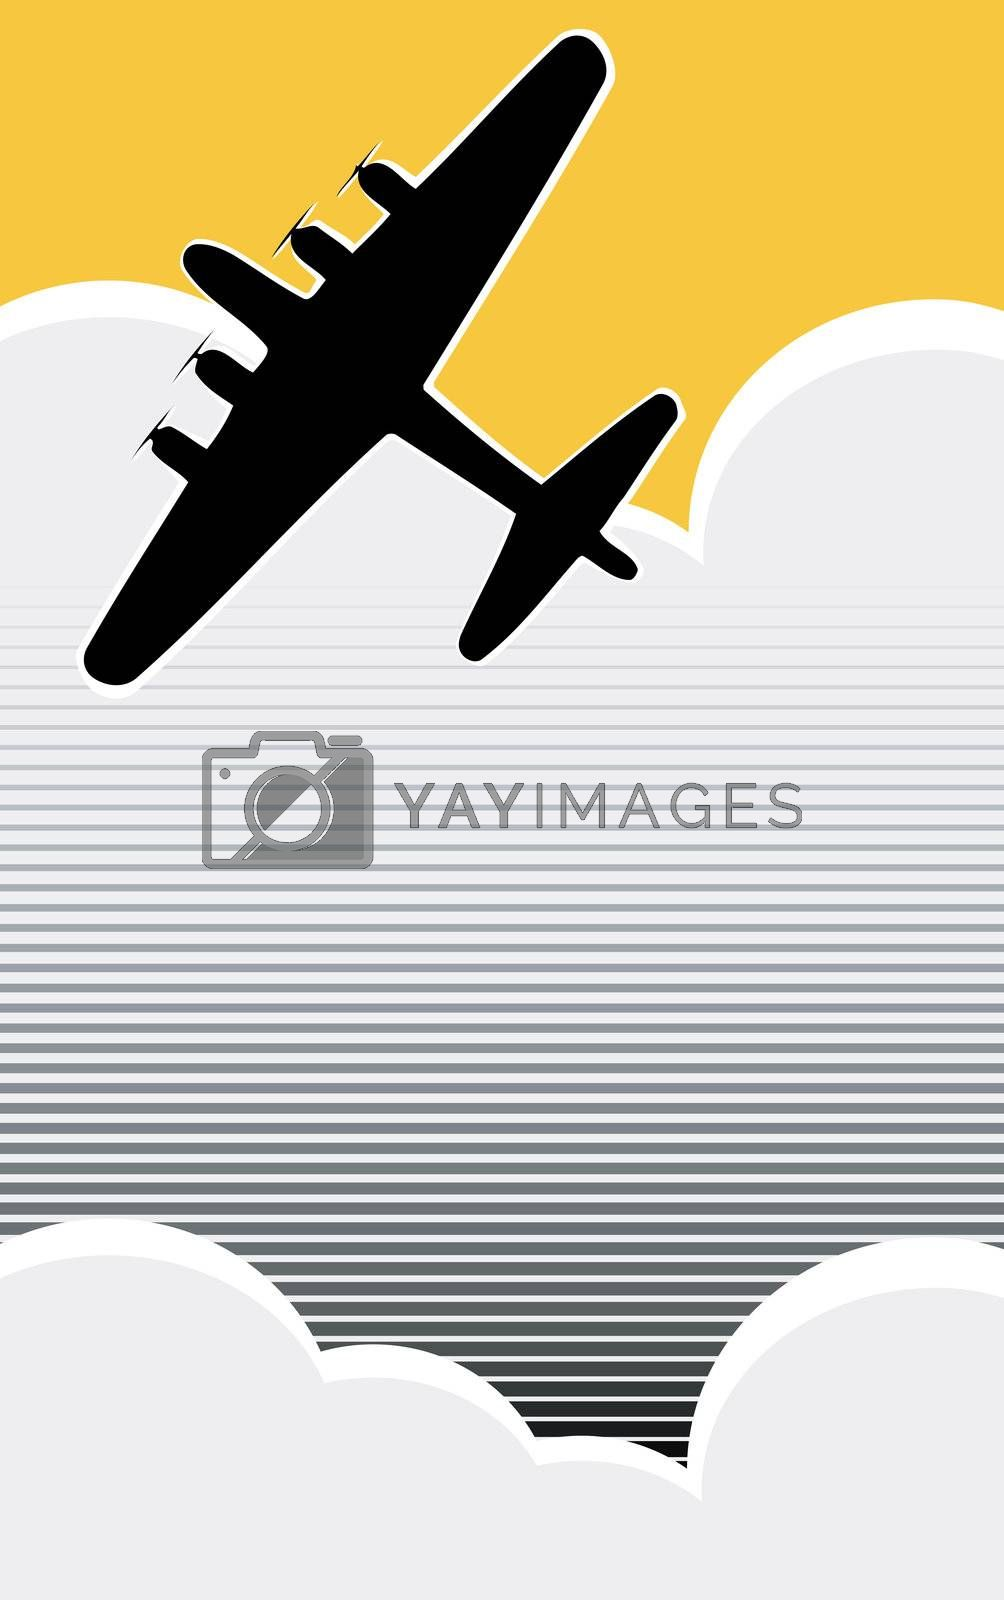 Lone World War II bomber in the clouds in retro poster style.